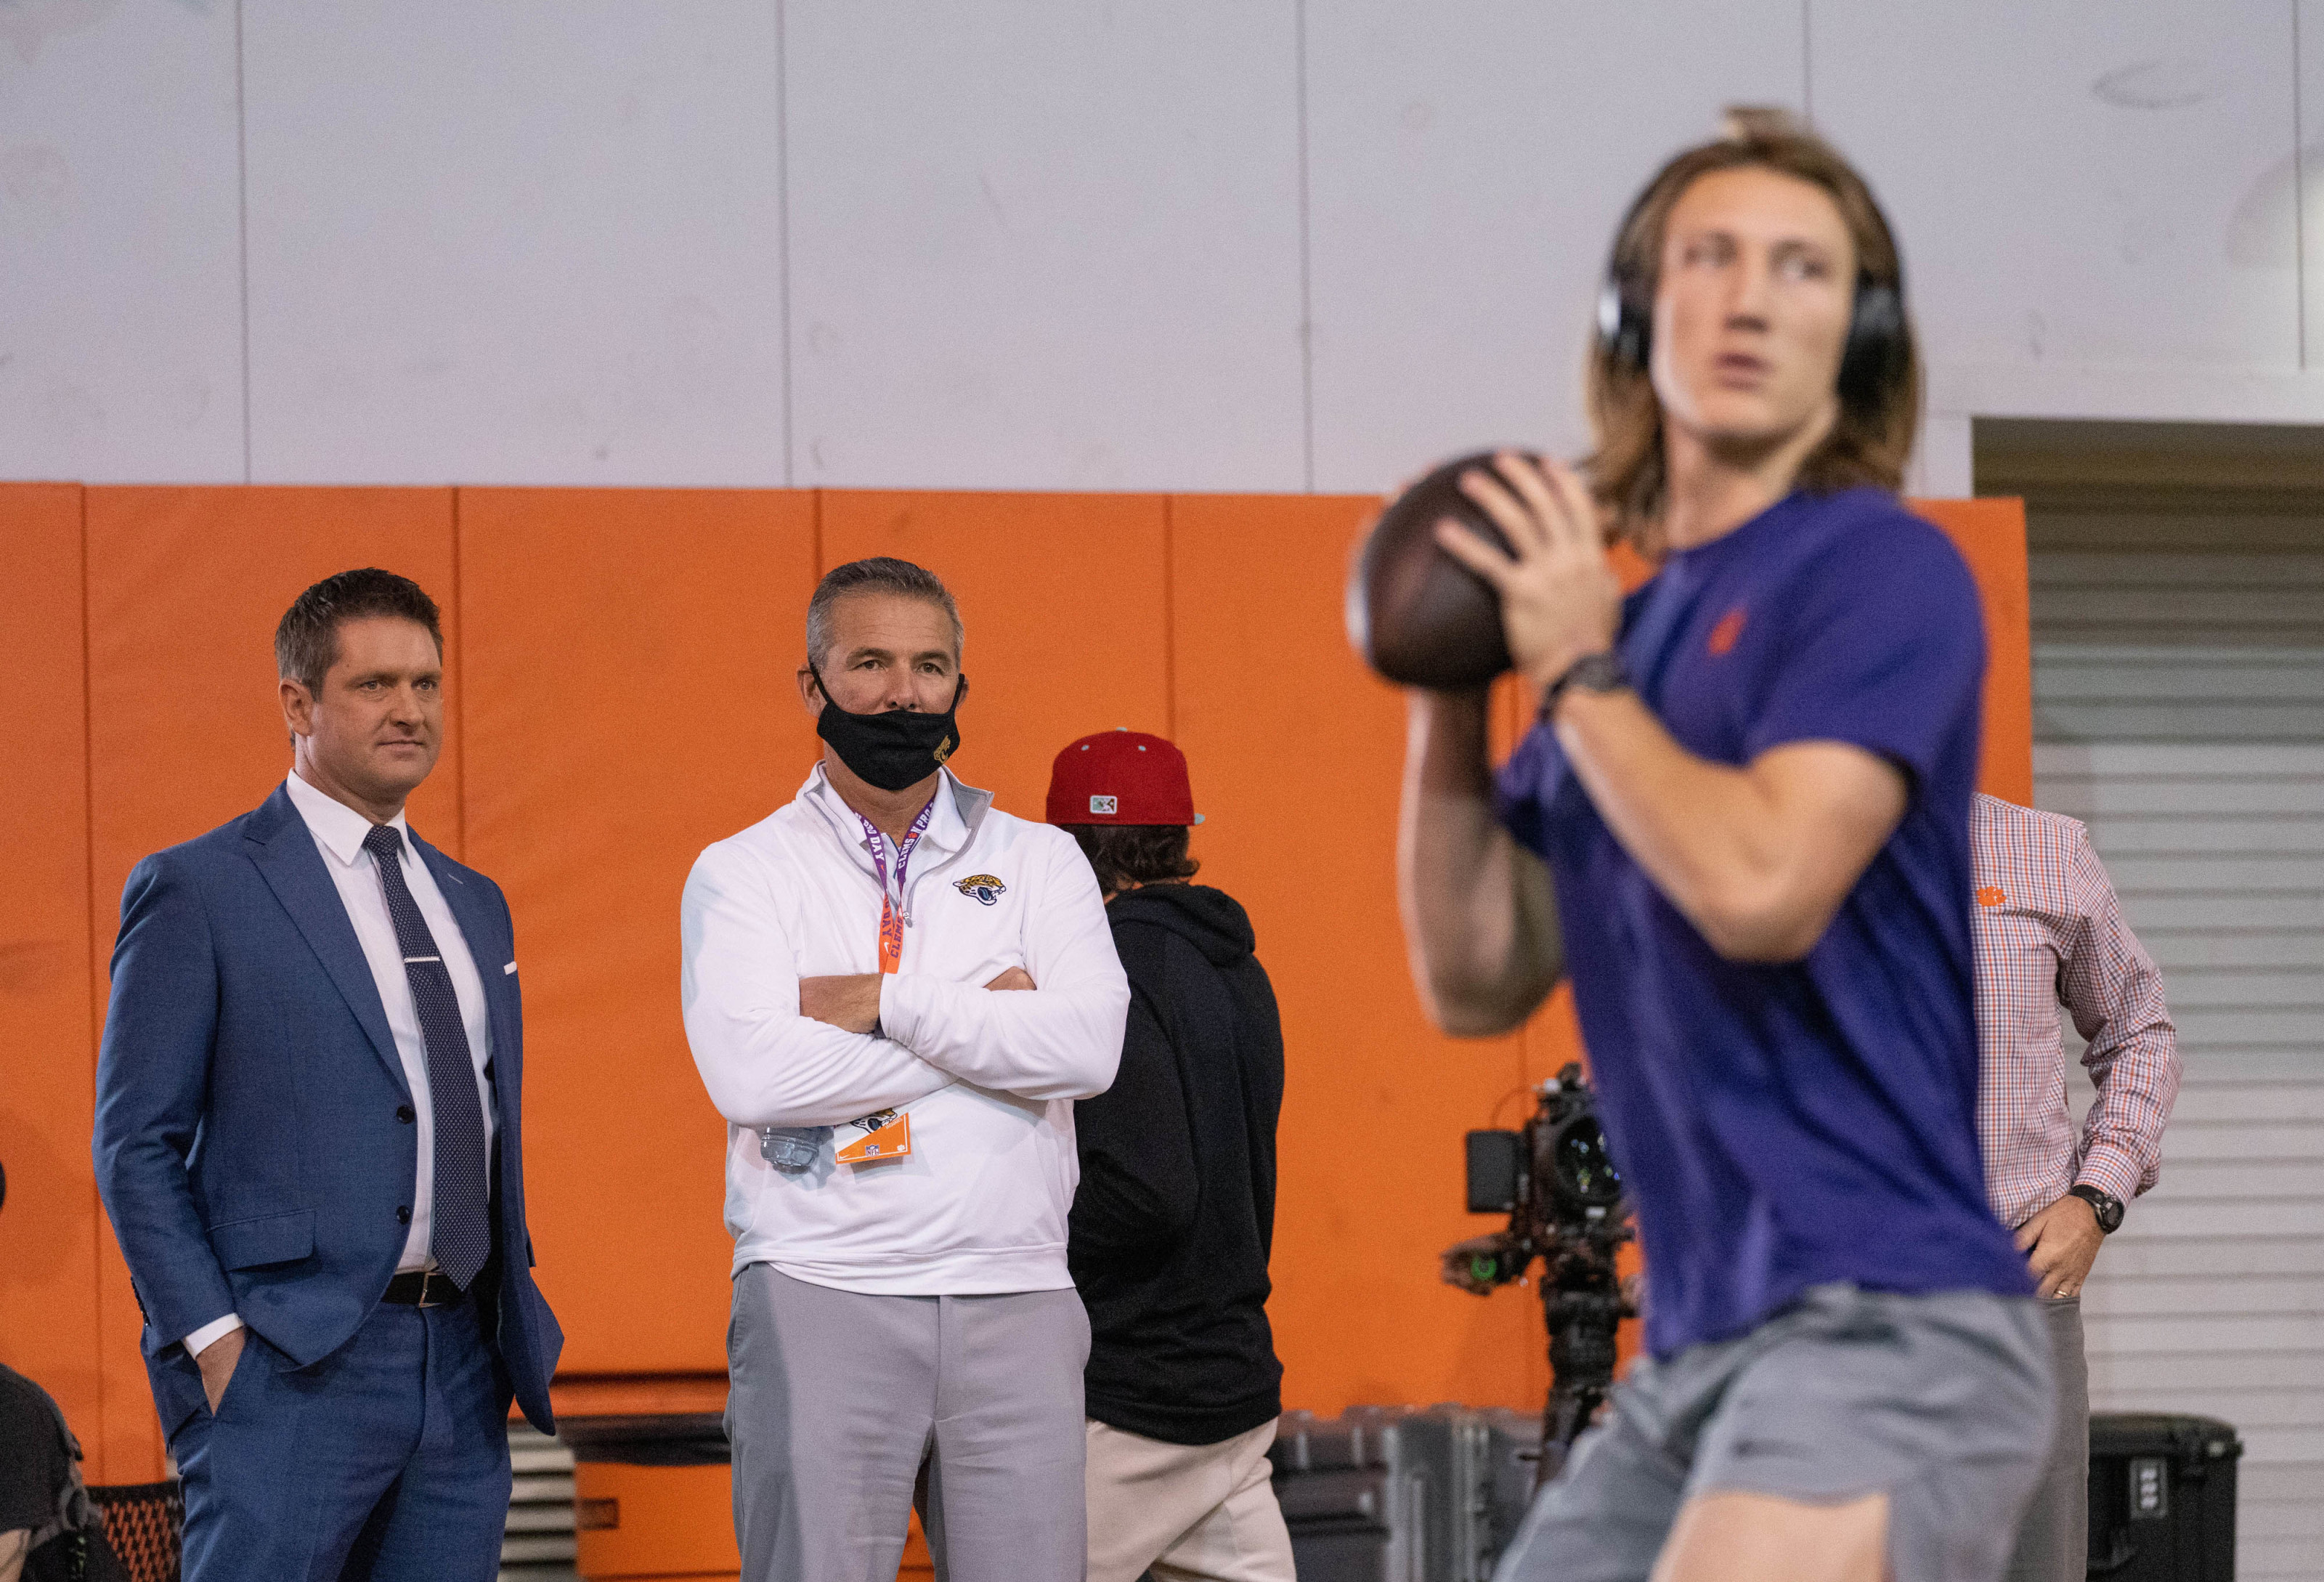 Urban Meyer doesn't care about Trevor Lawrence doubters' opinions